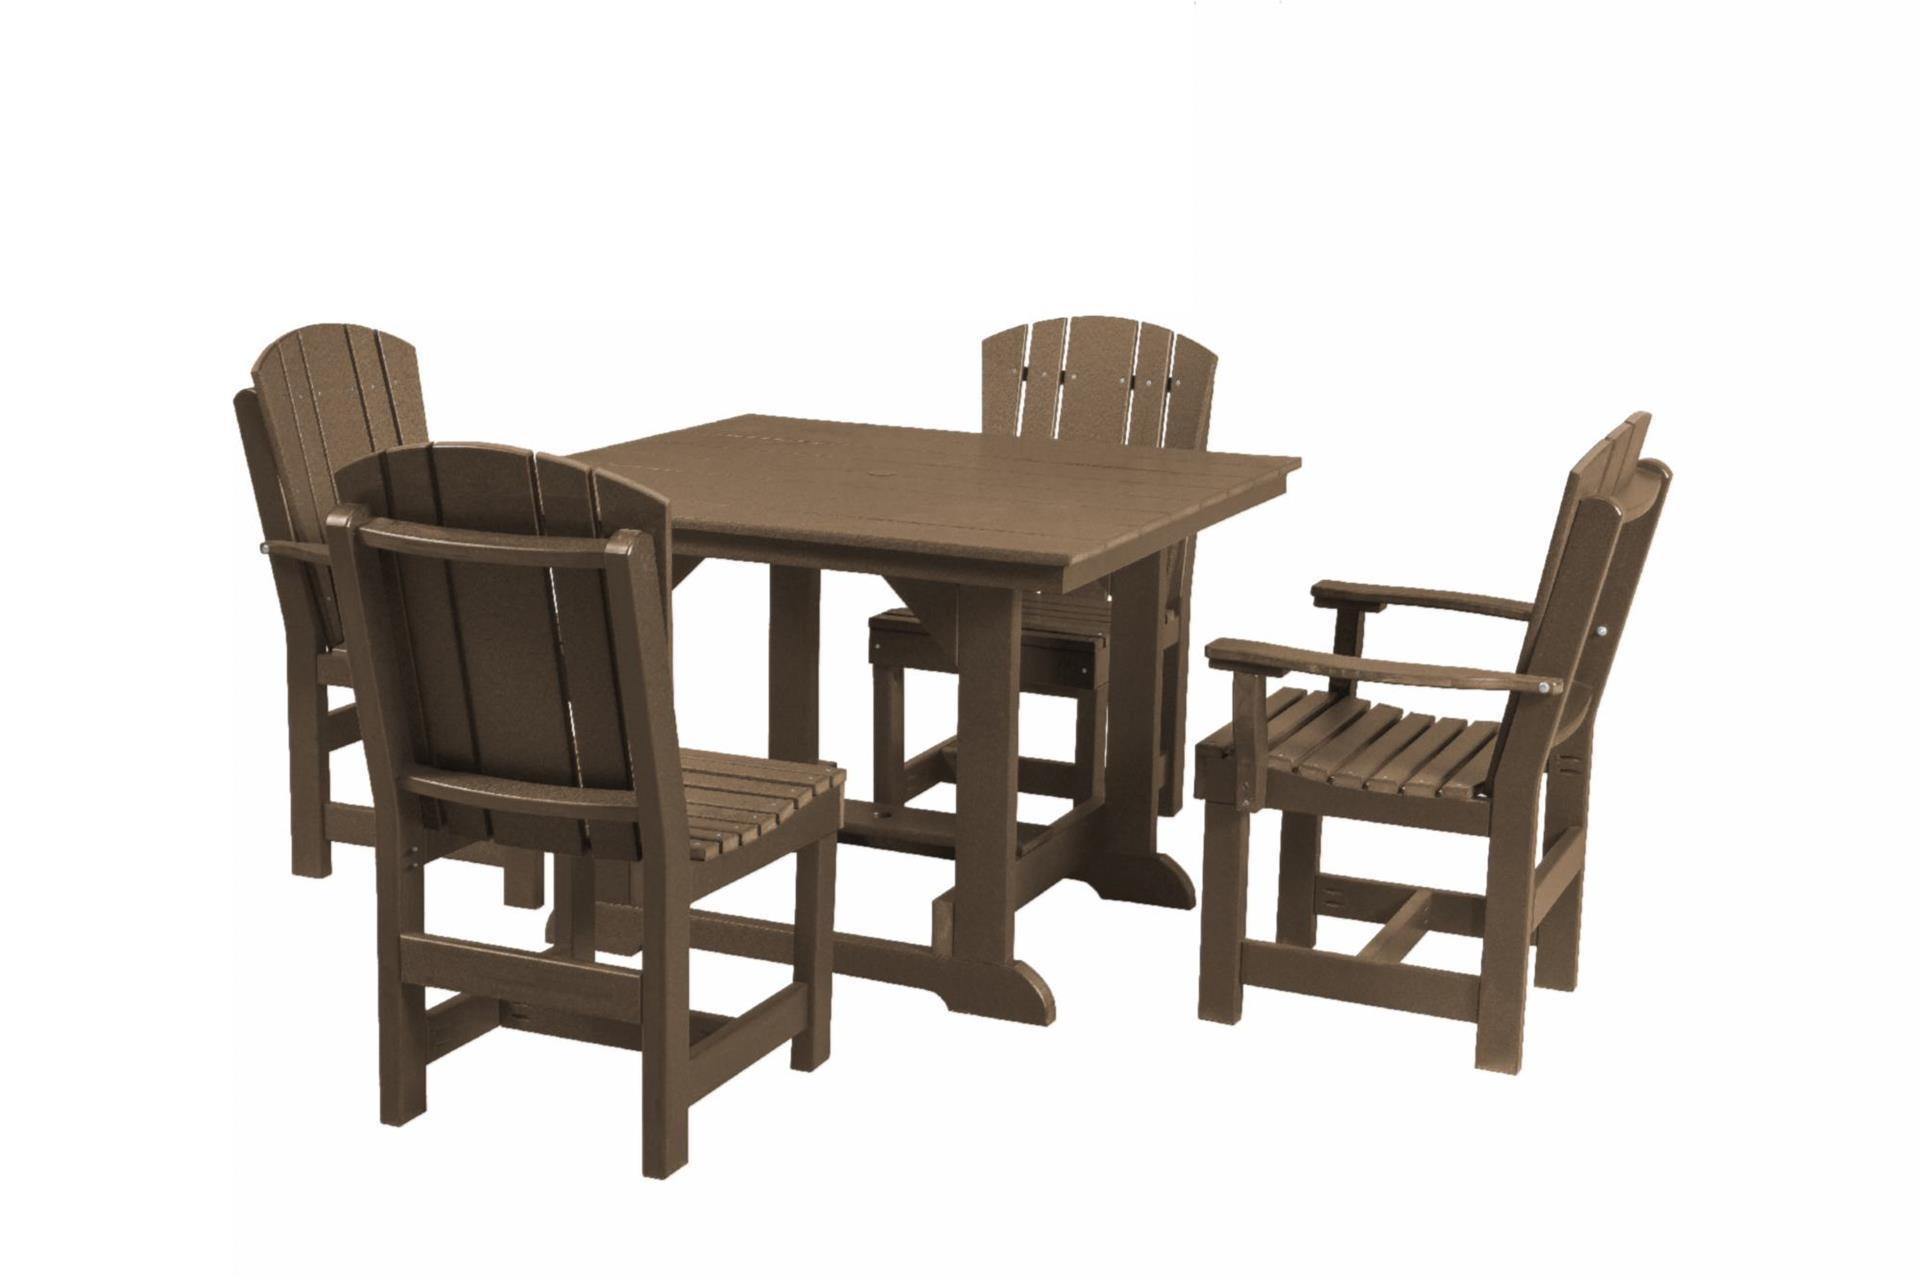 Eco Poly Outdoor Furniture Dining Set